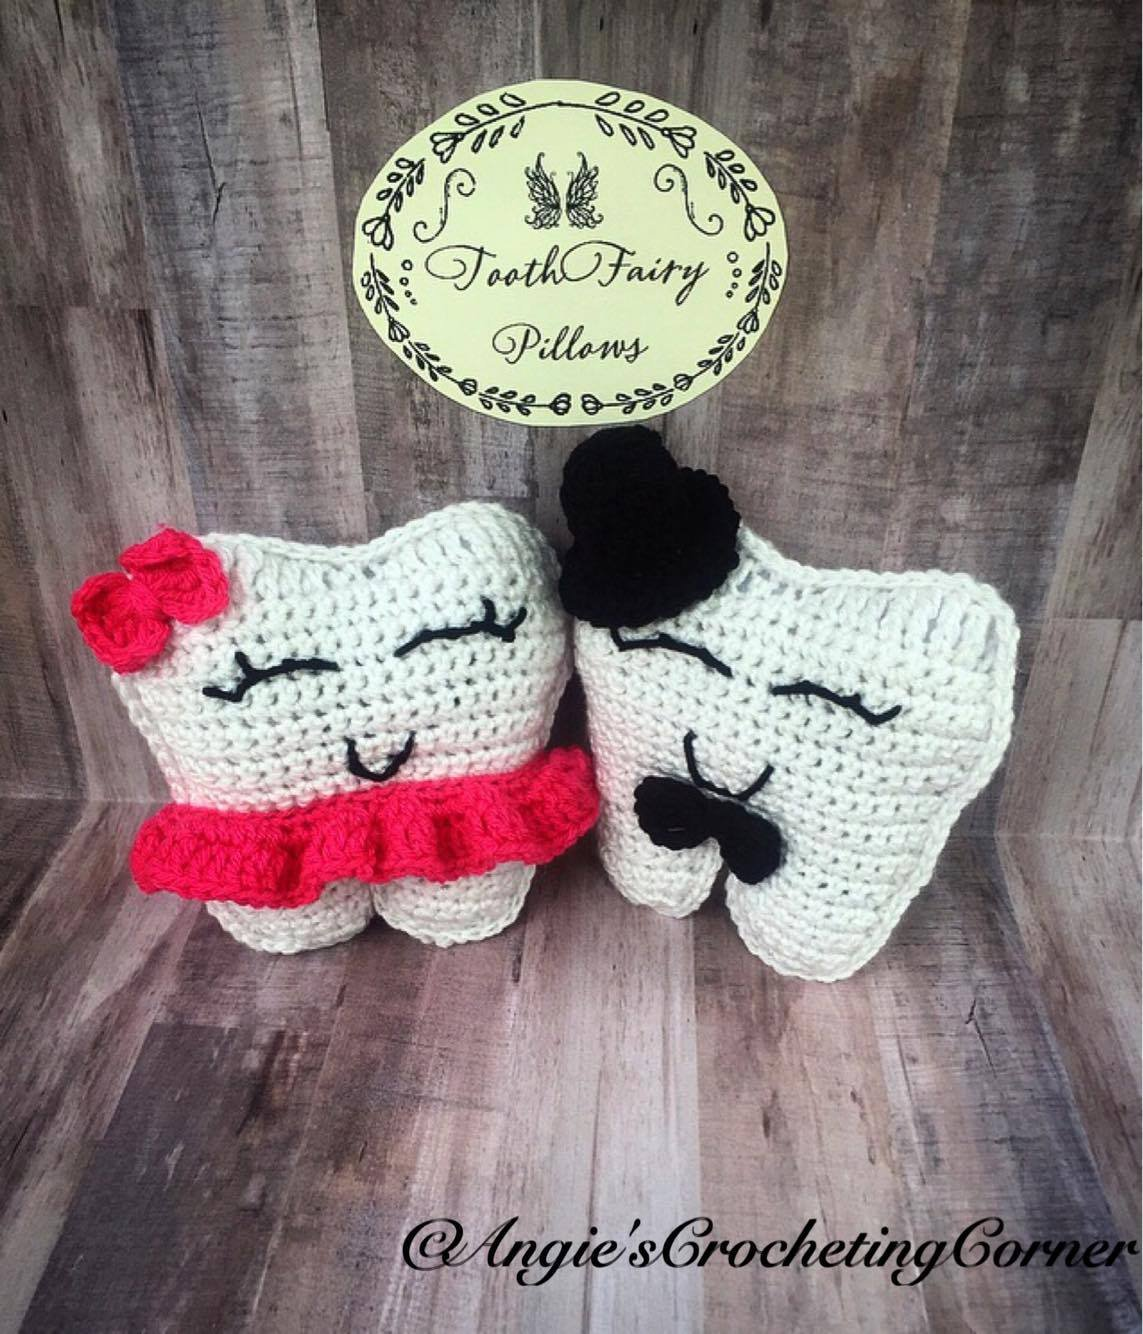 Crochet Tooth Fairy Pillow, Boy and Girl Tooth Fairy Pillow, Tooth Pocket Pillow, Tooth Holding Toy, Tooth Fairy Toy